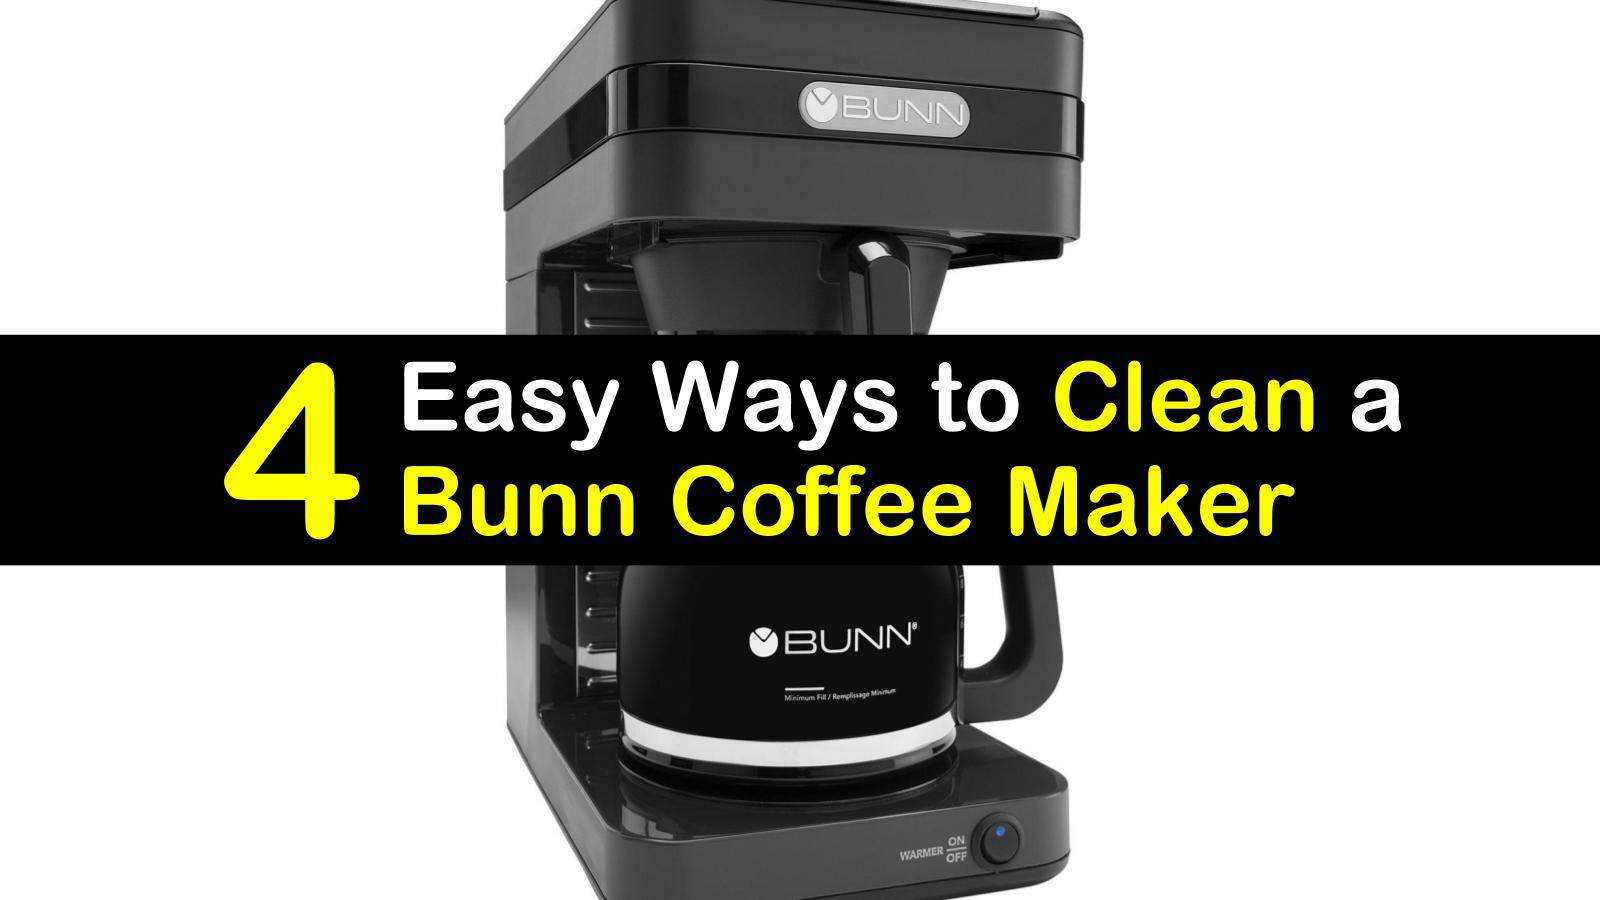 bunn commercial coffee maker manual